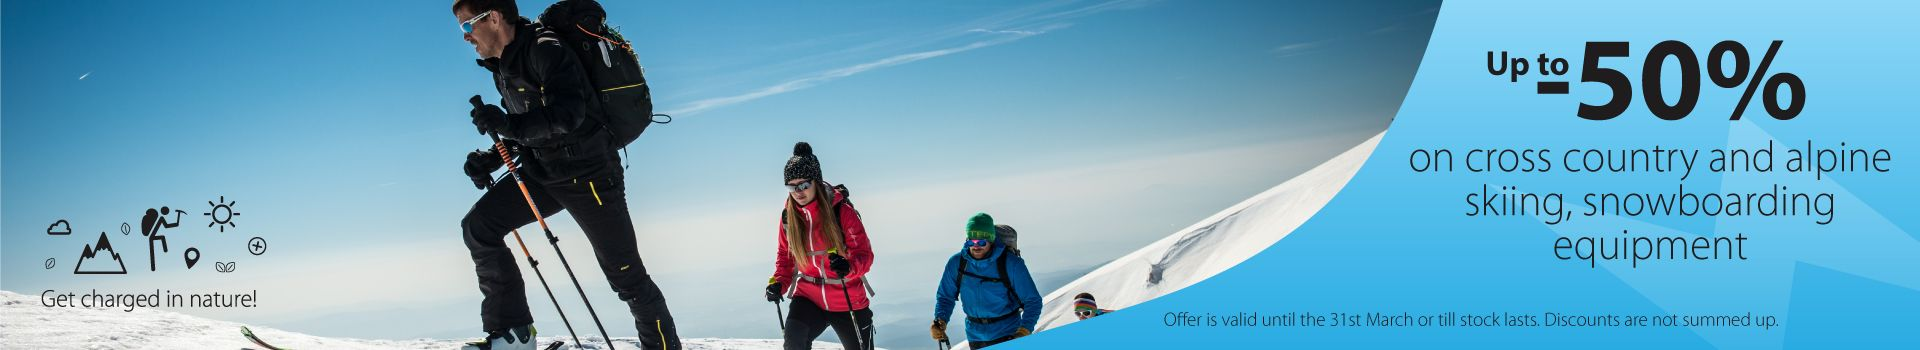 snowboarding-and-cross-country-alpine-skiing-equipment-up-to-50-percentage